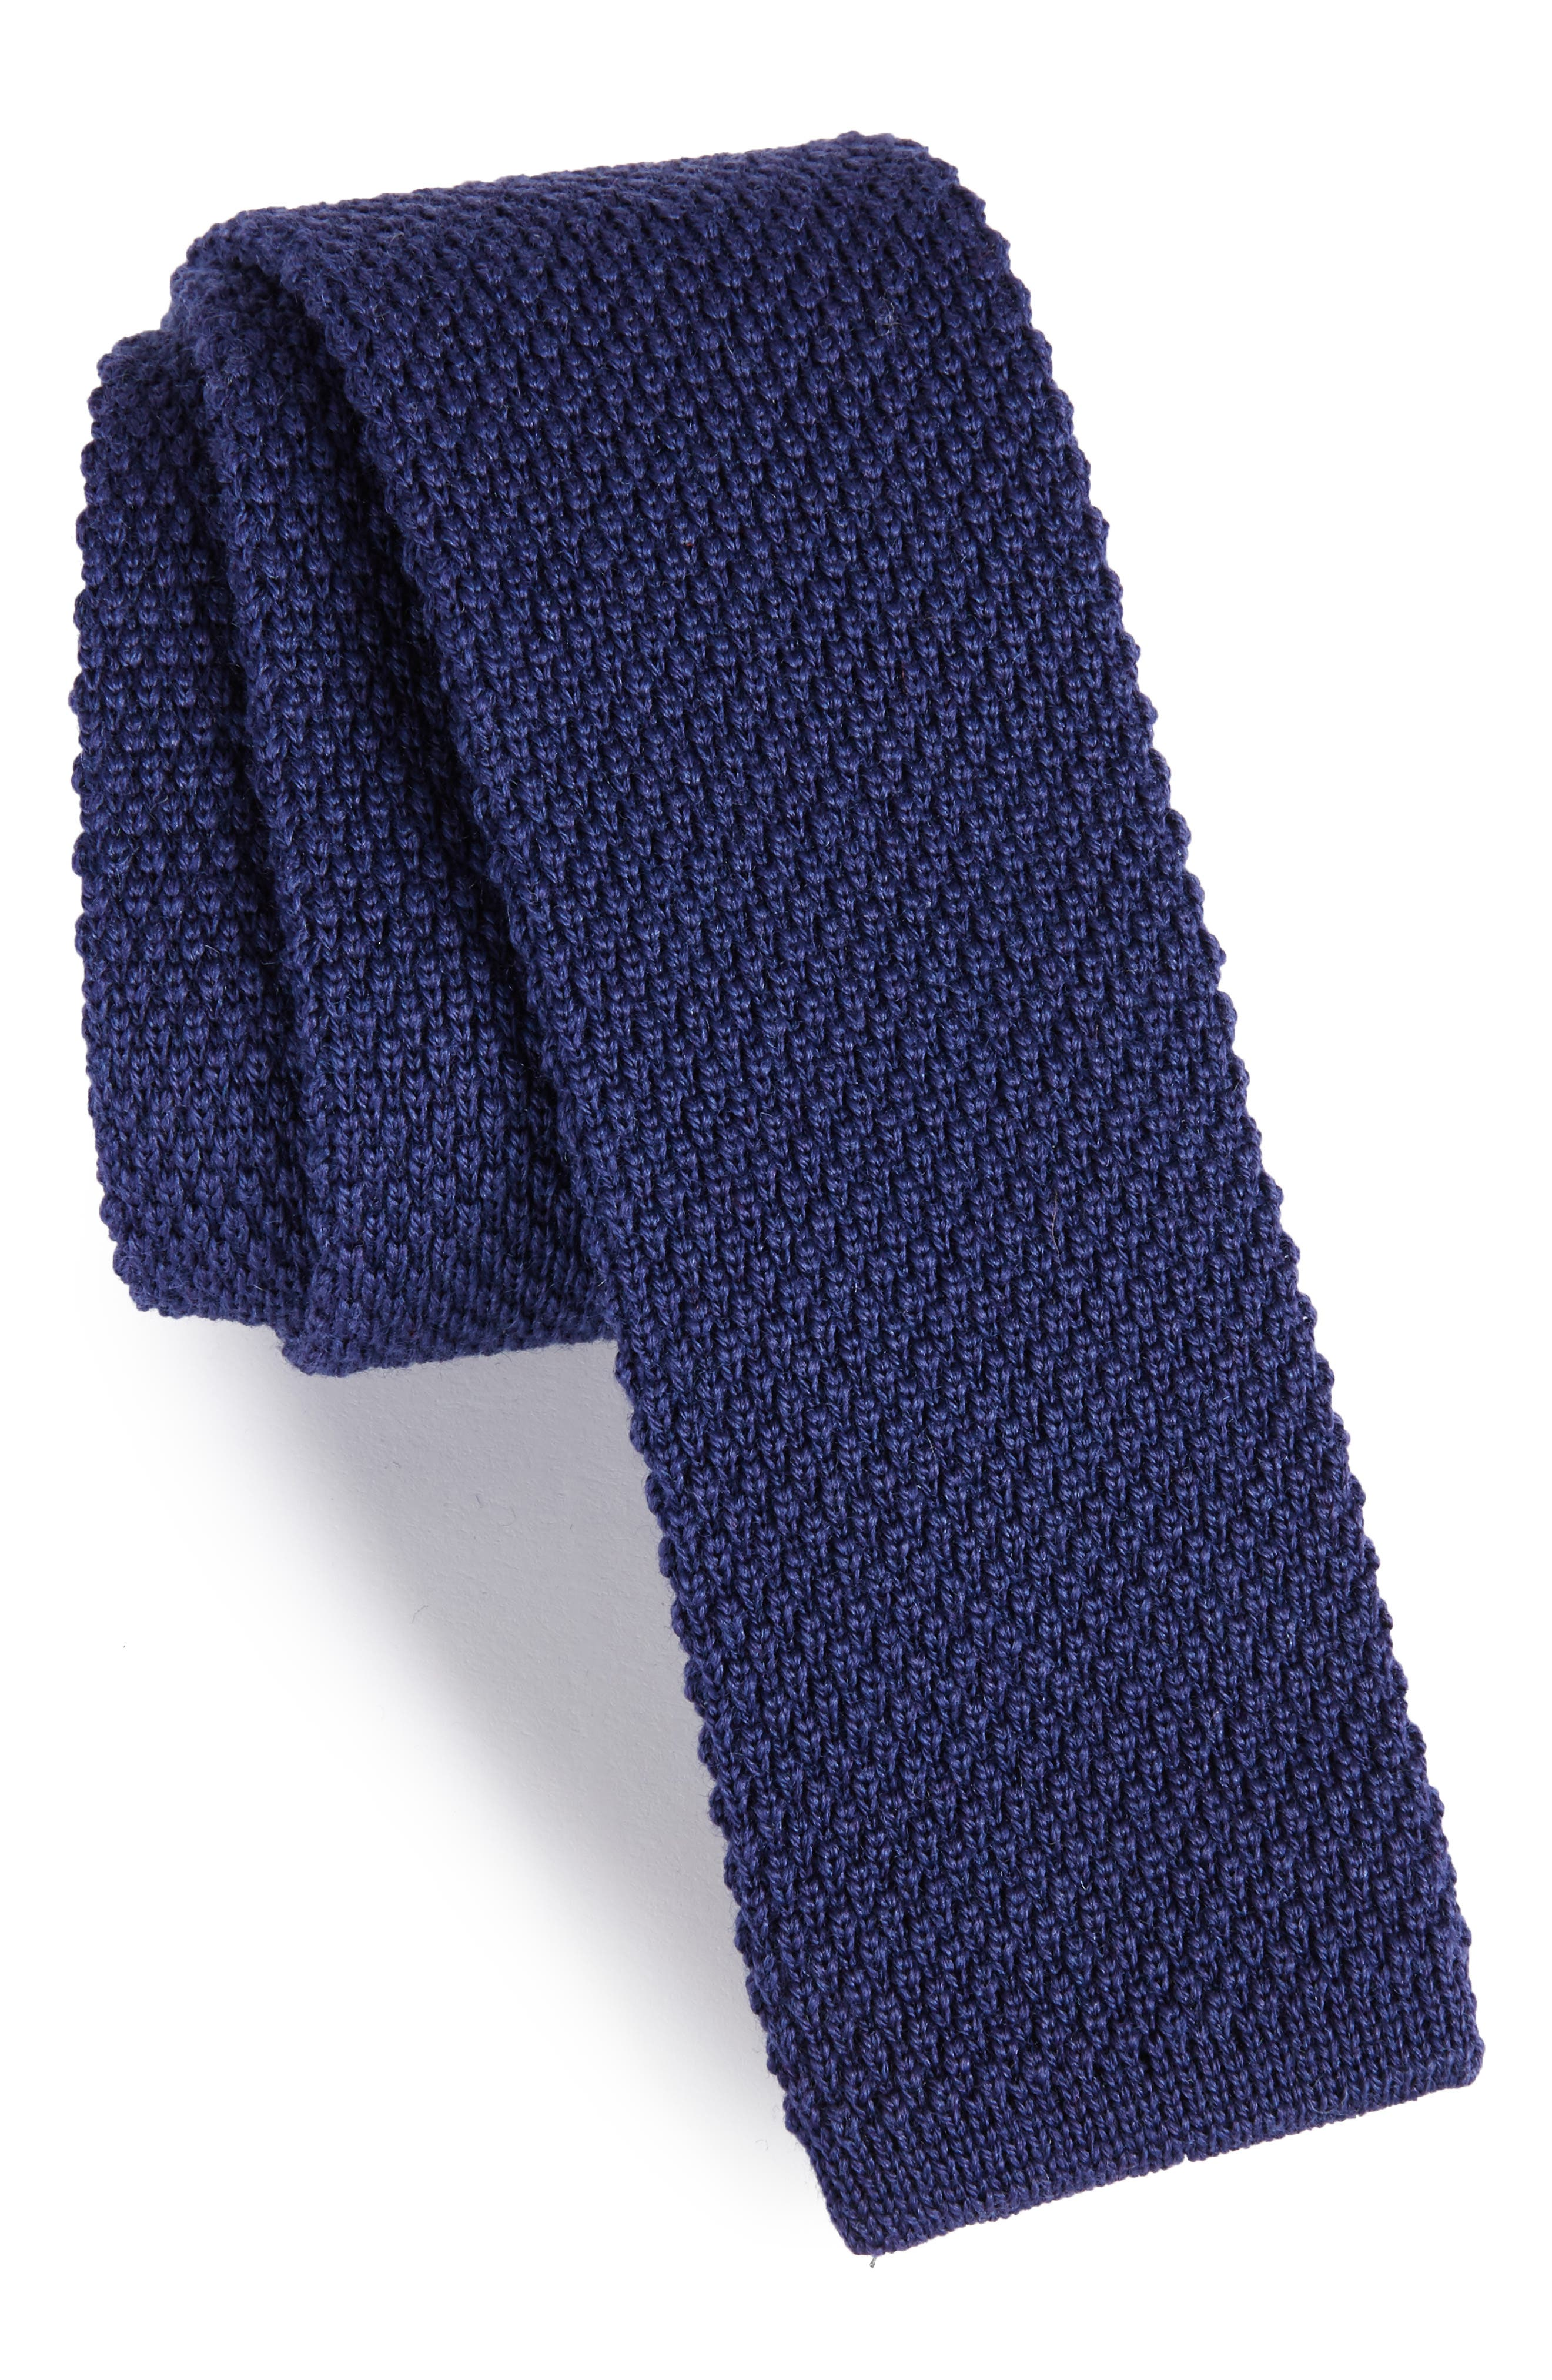 Solid Knit Wool Skinny Tie,                         Main,                         color, Blue